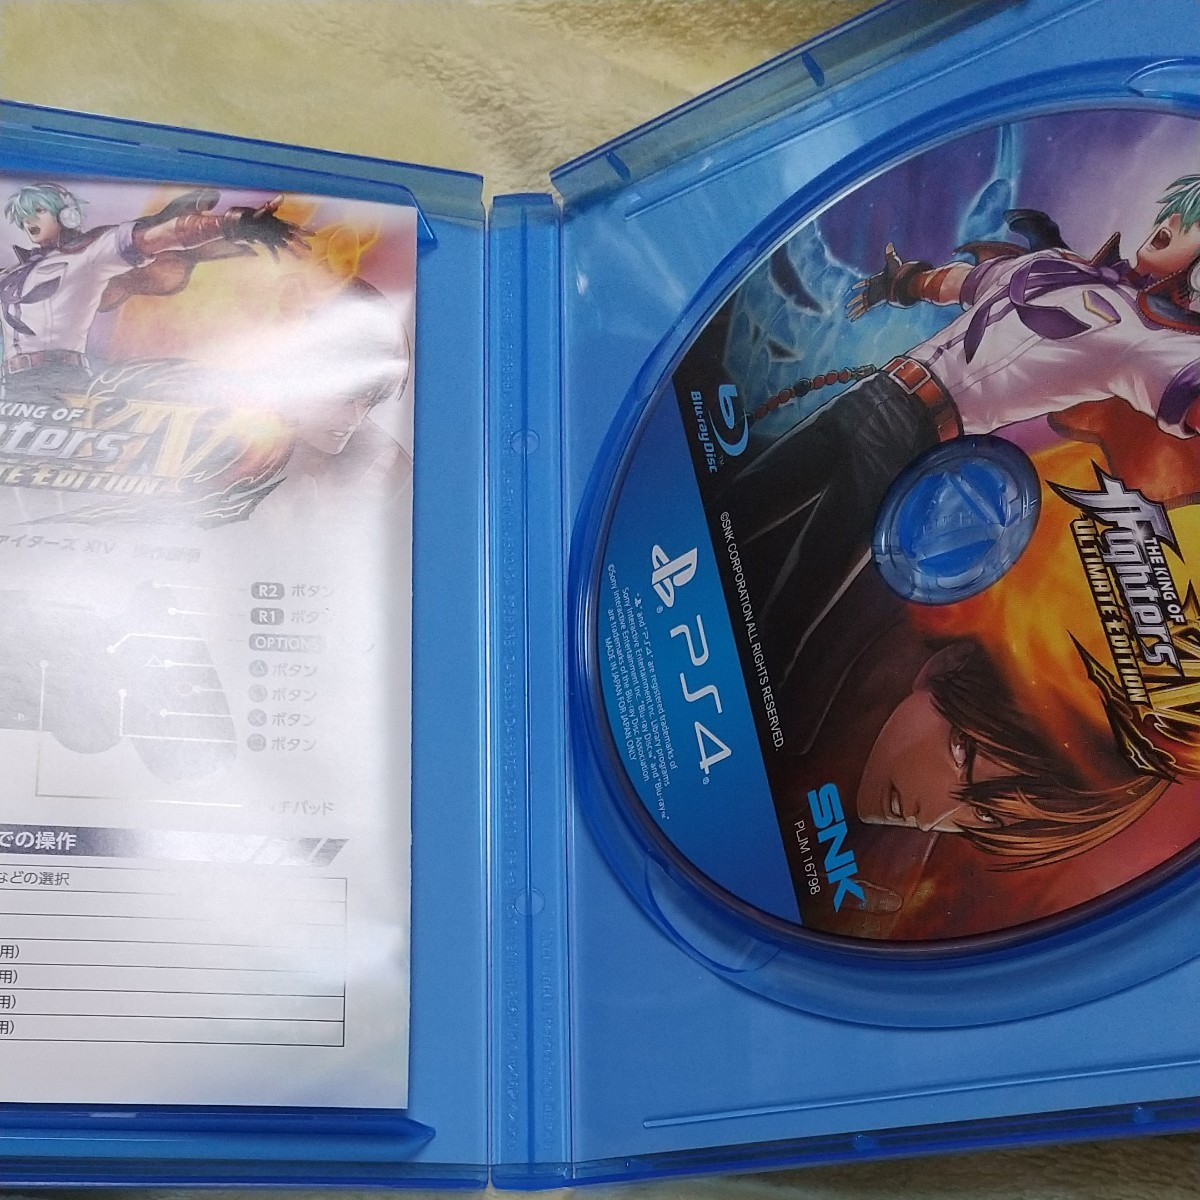 【PS4】 THE KING OF FIGHTERS XIV [ULTIMATE EDITION] ザ・キング・オブ・ファイターズ